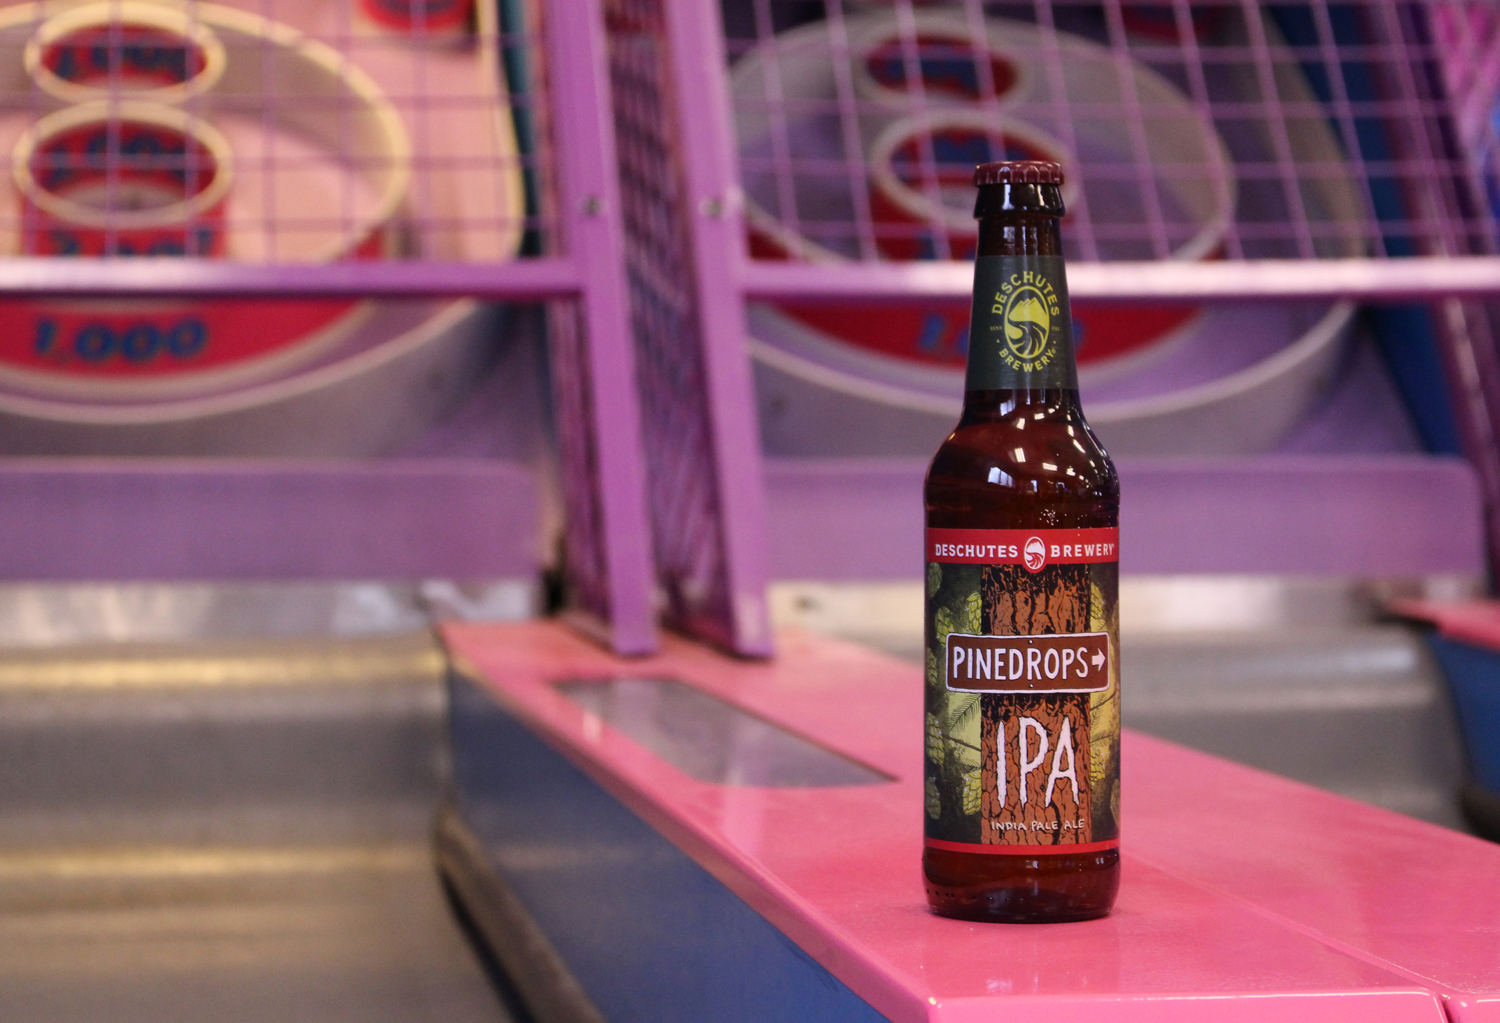 Pinedrops summer IPA pairs well with skee ball.